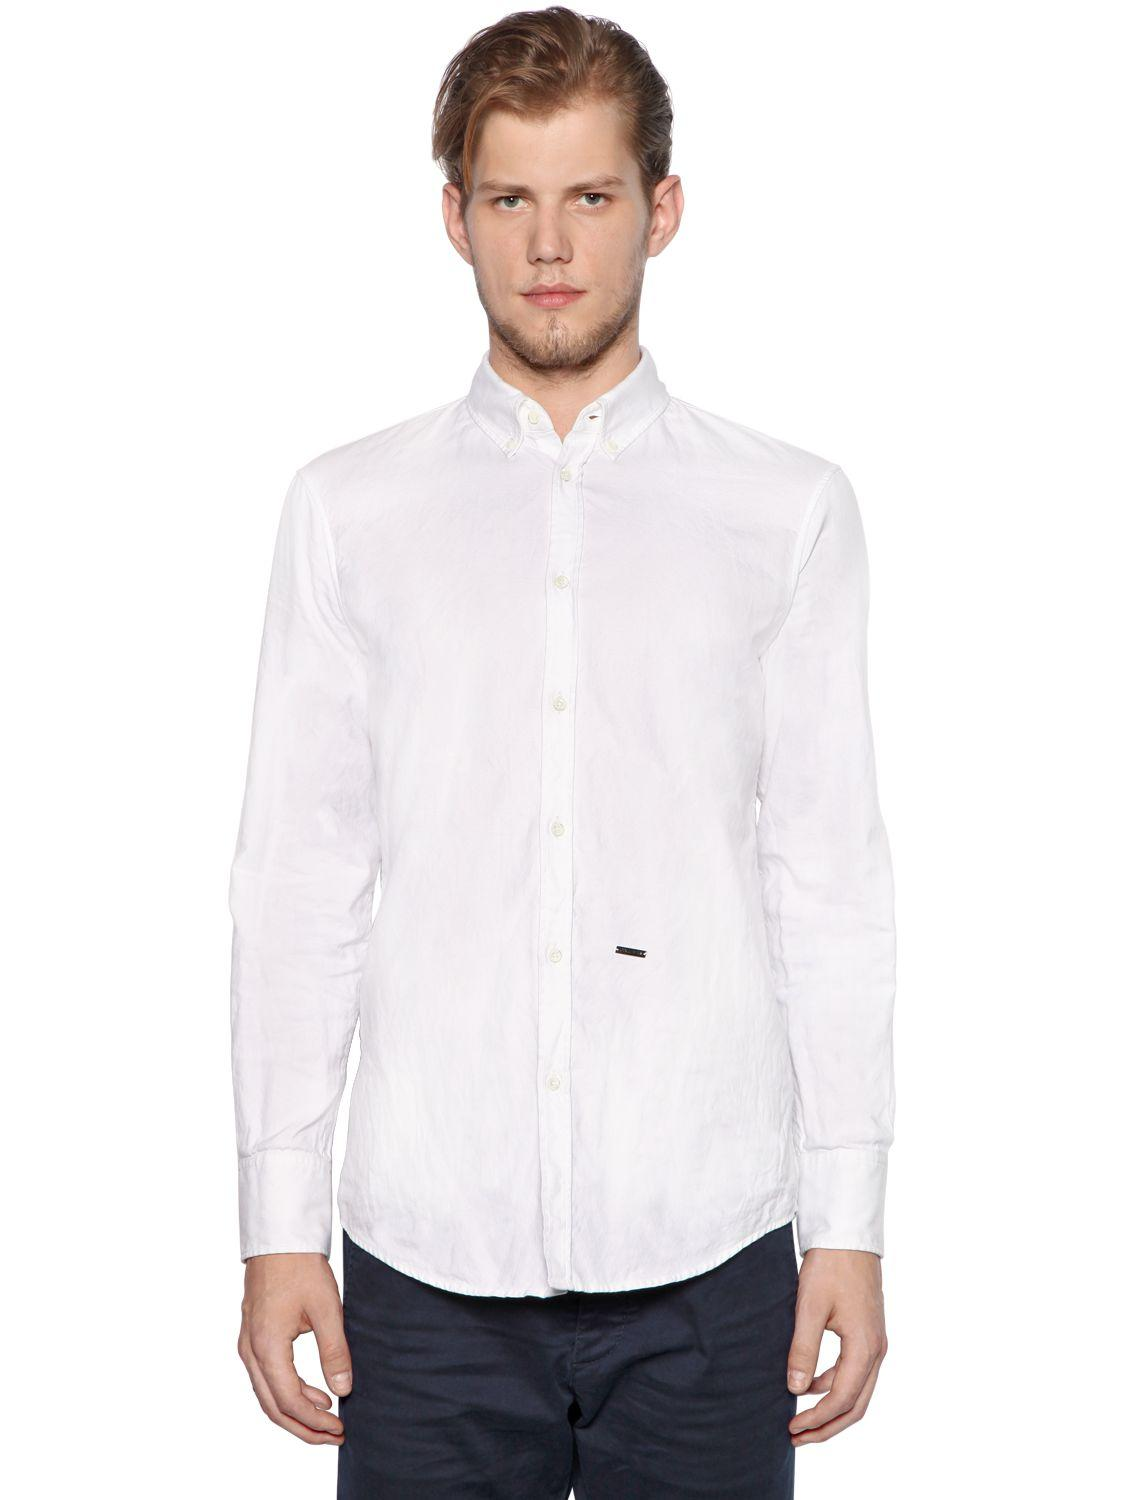 dsquared button down oxford cotton shirt in white for men